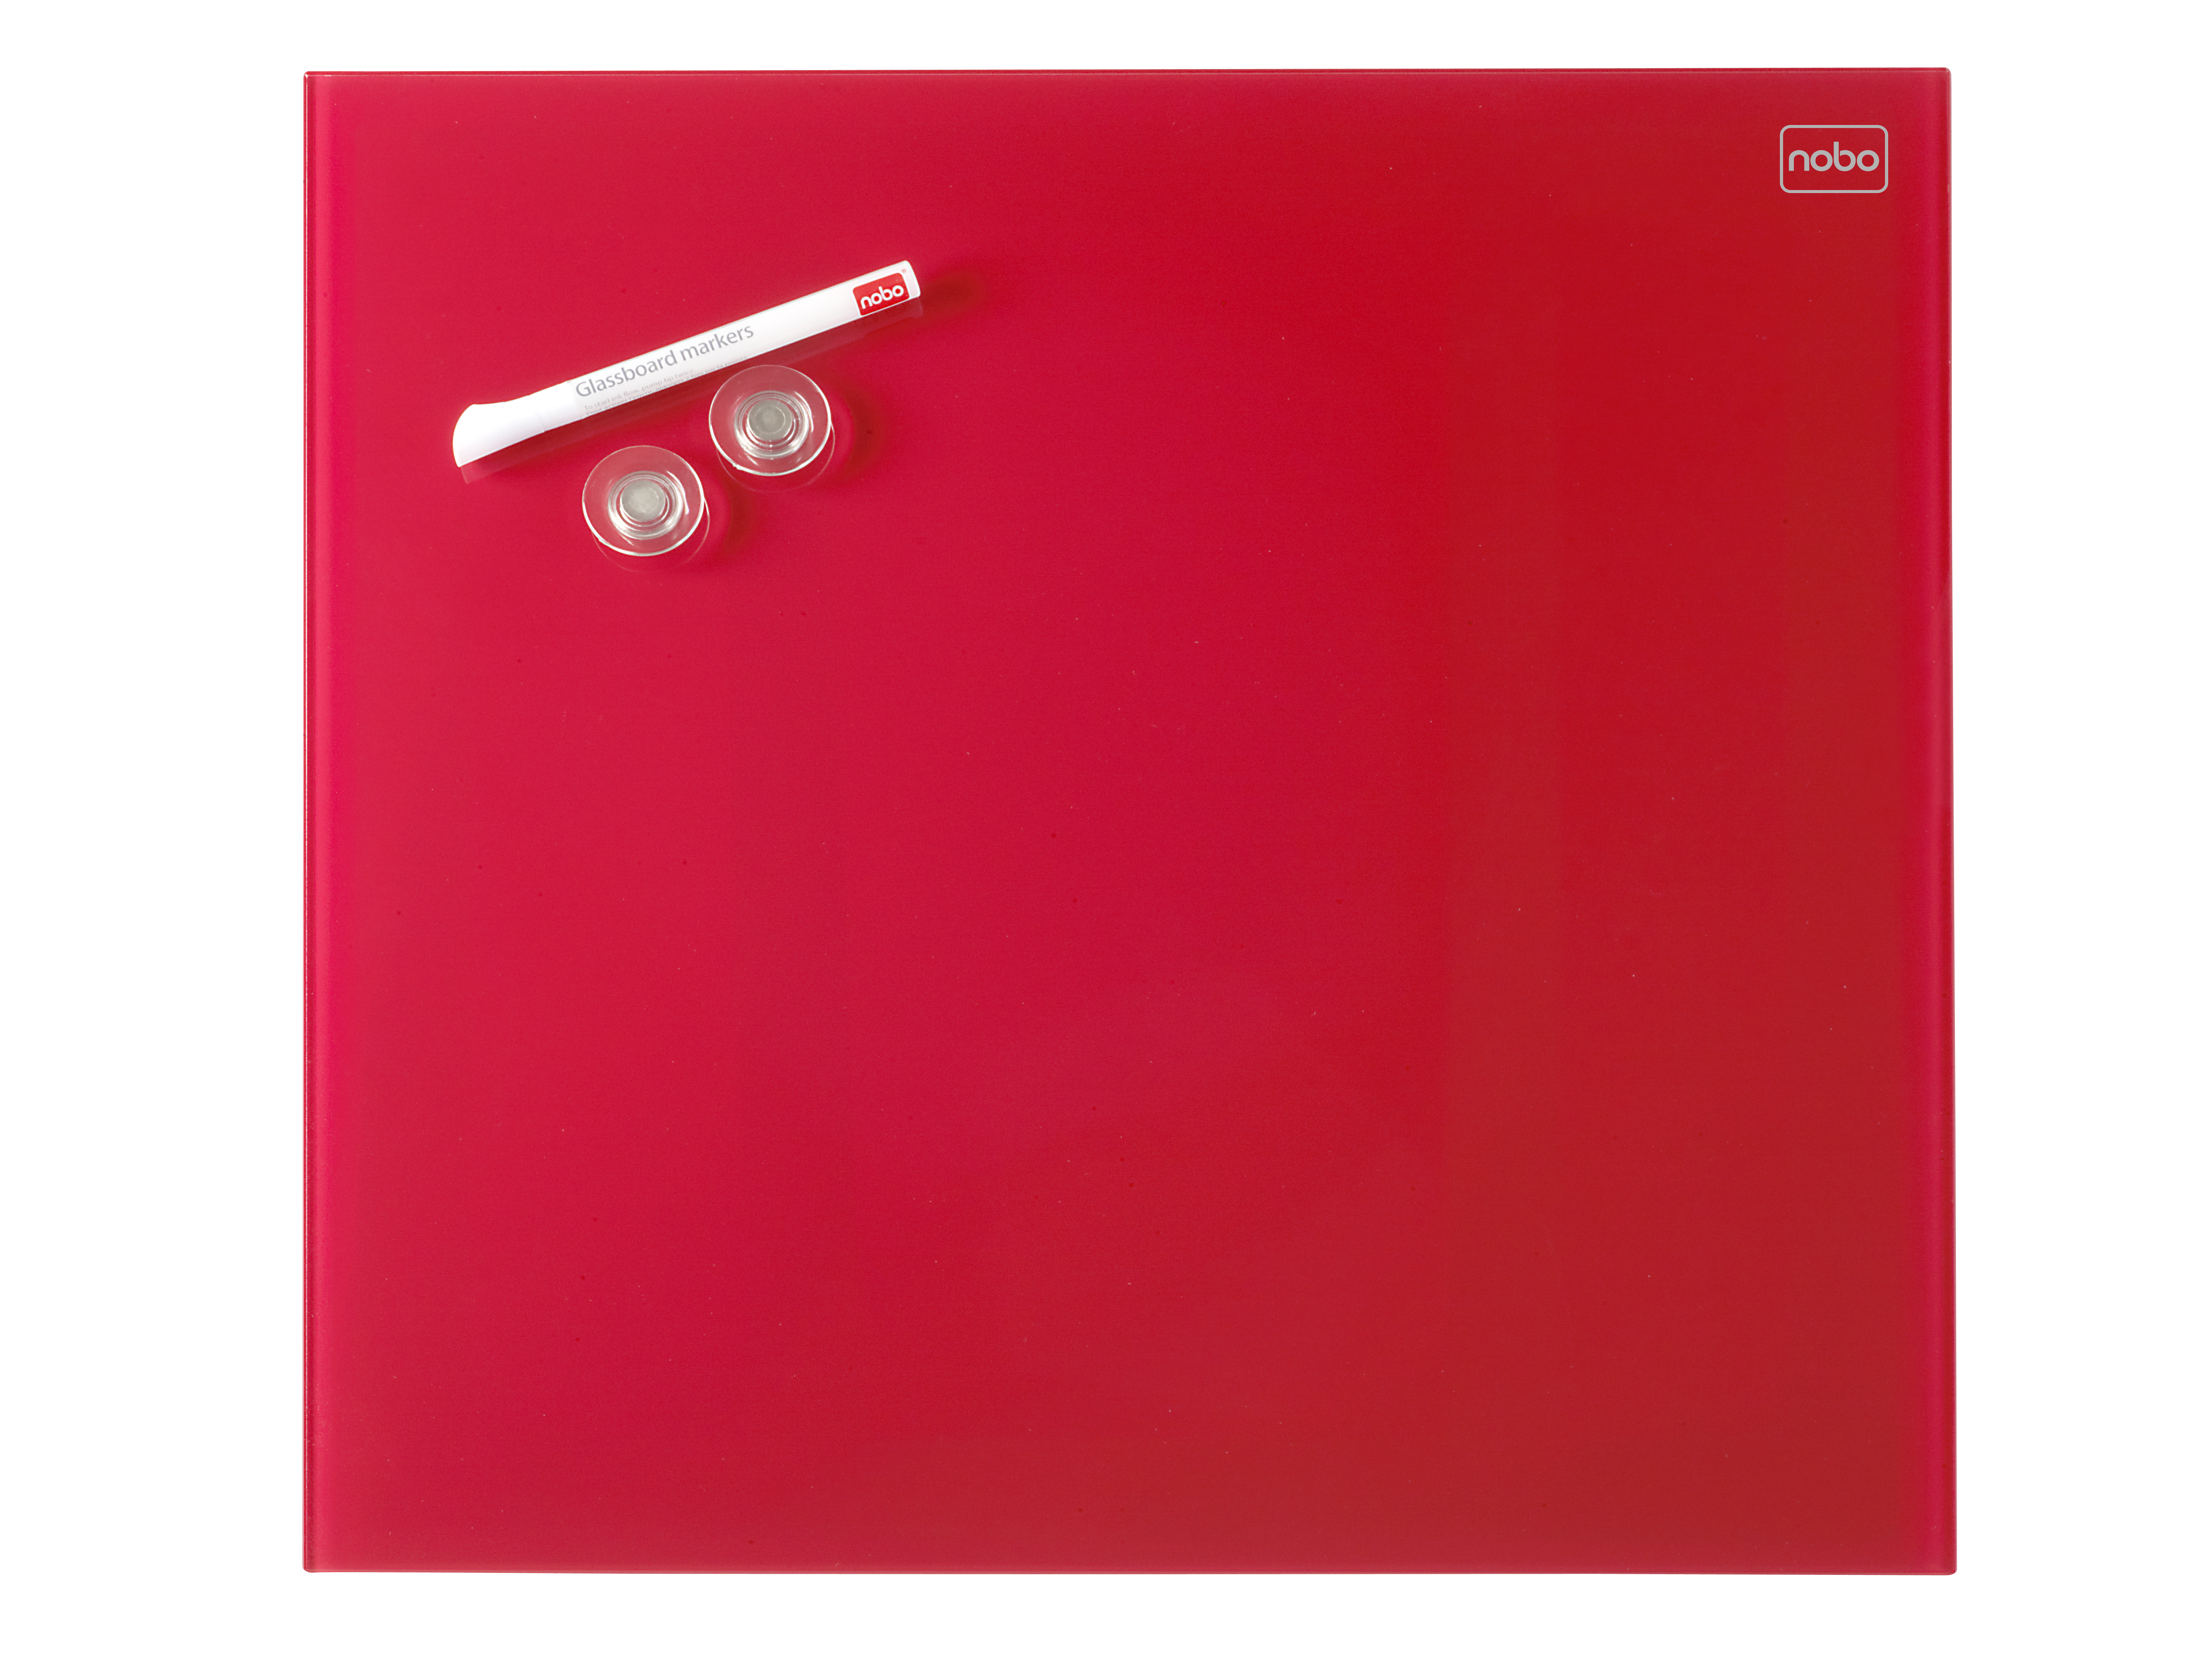 acco Nobo Diamond Drywipe Board Magnetic 300x300mm Red Dd 1903954 - AD01